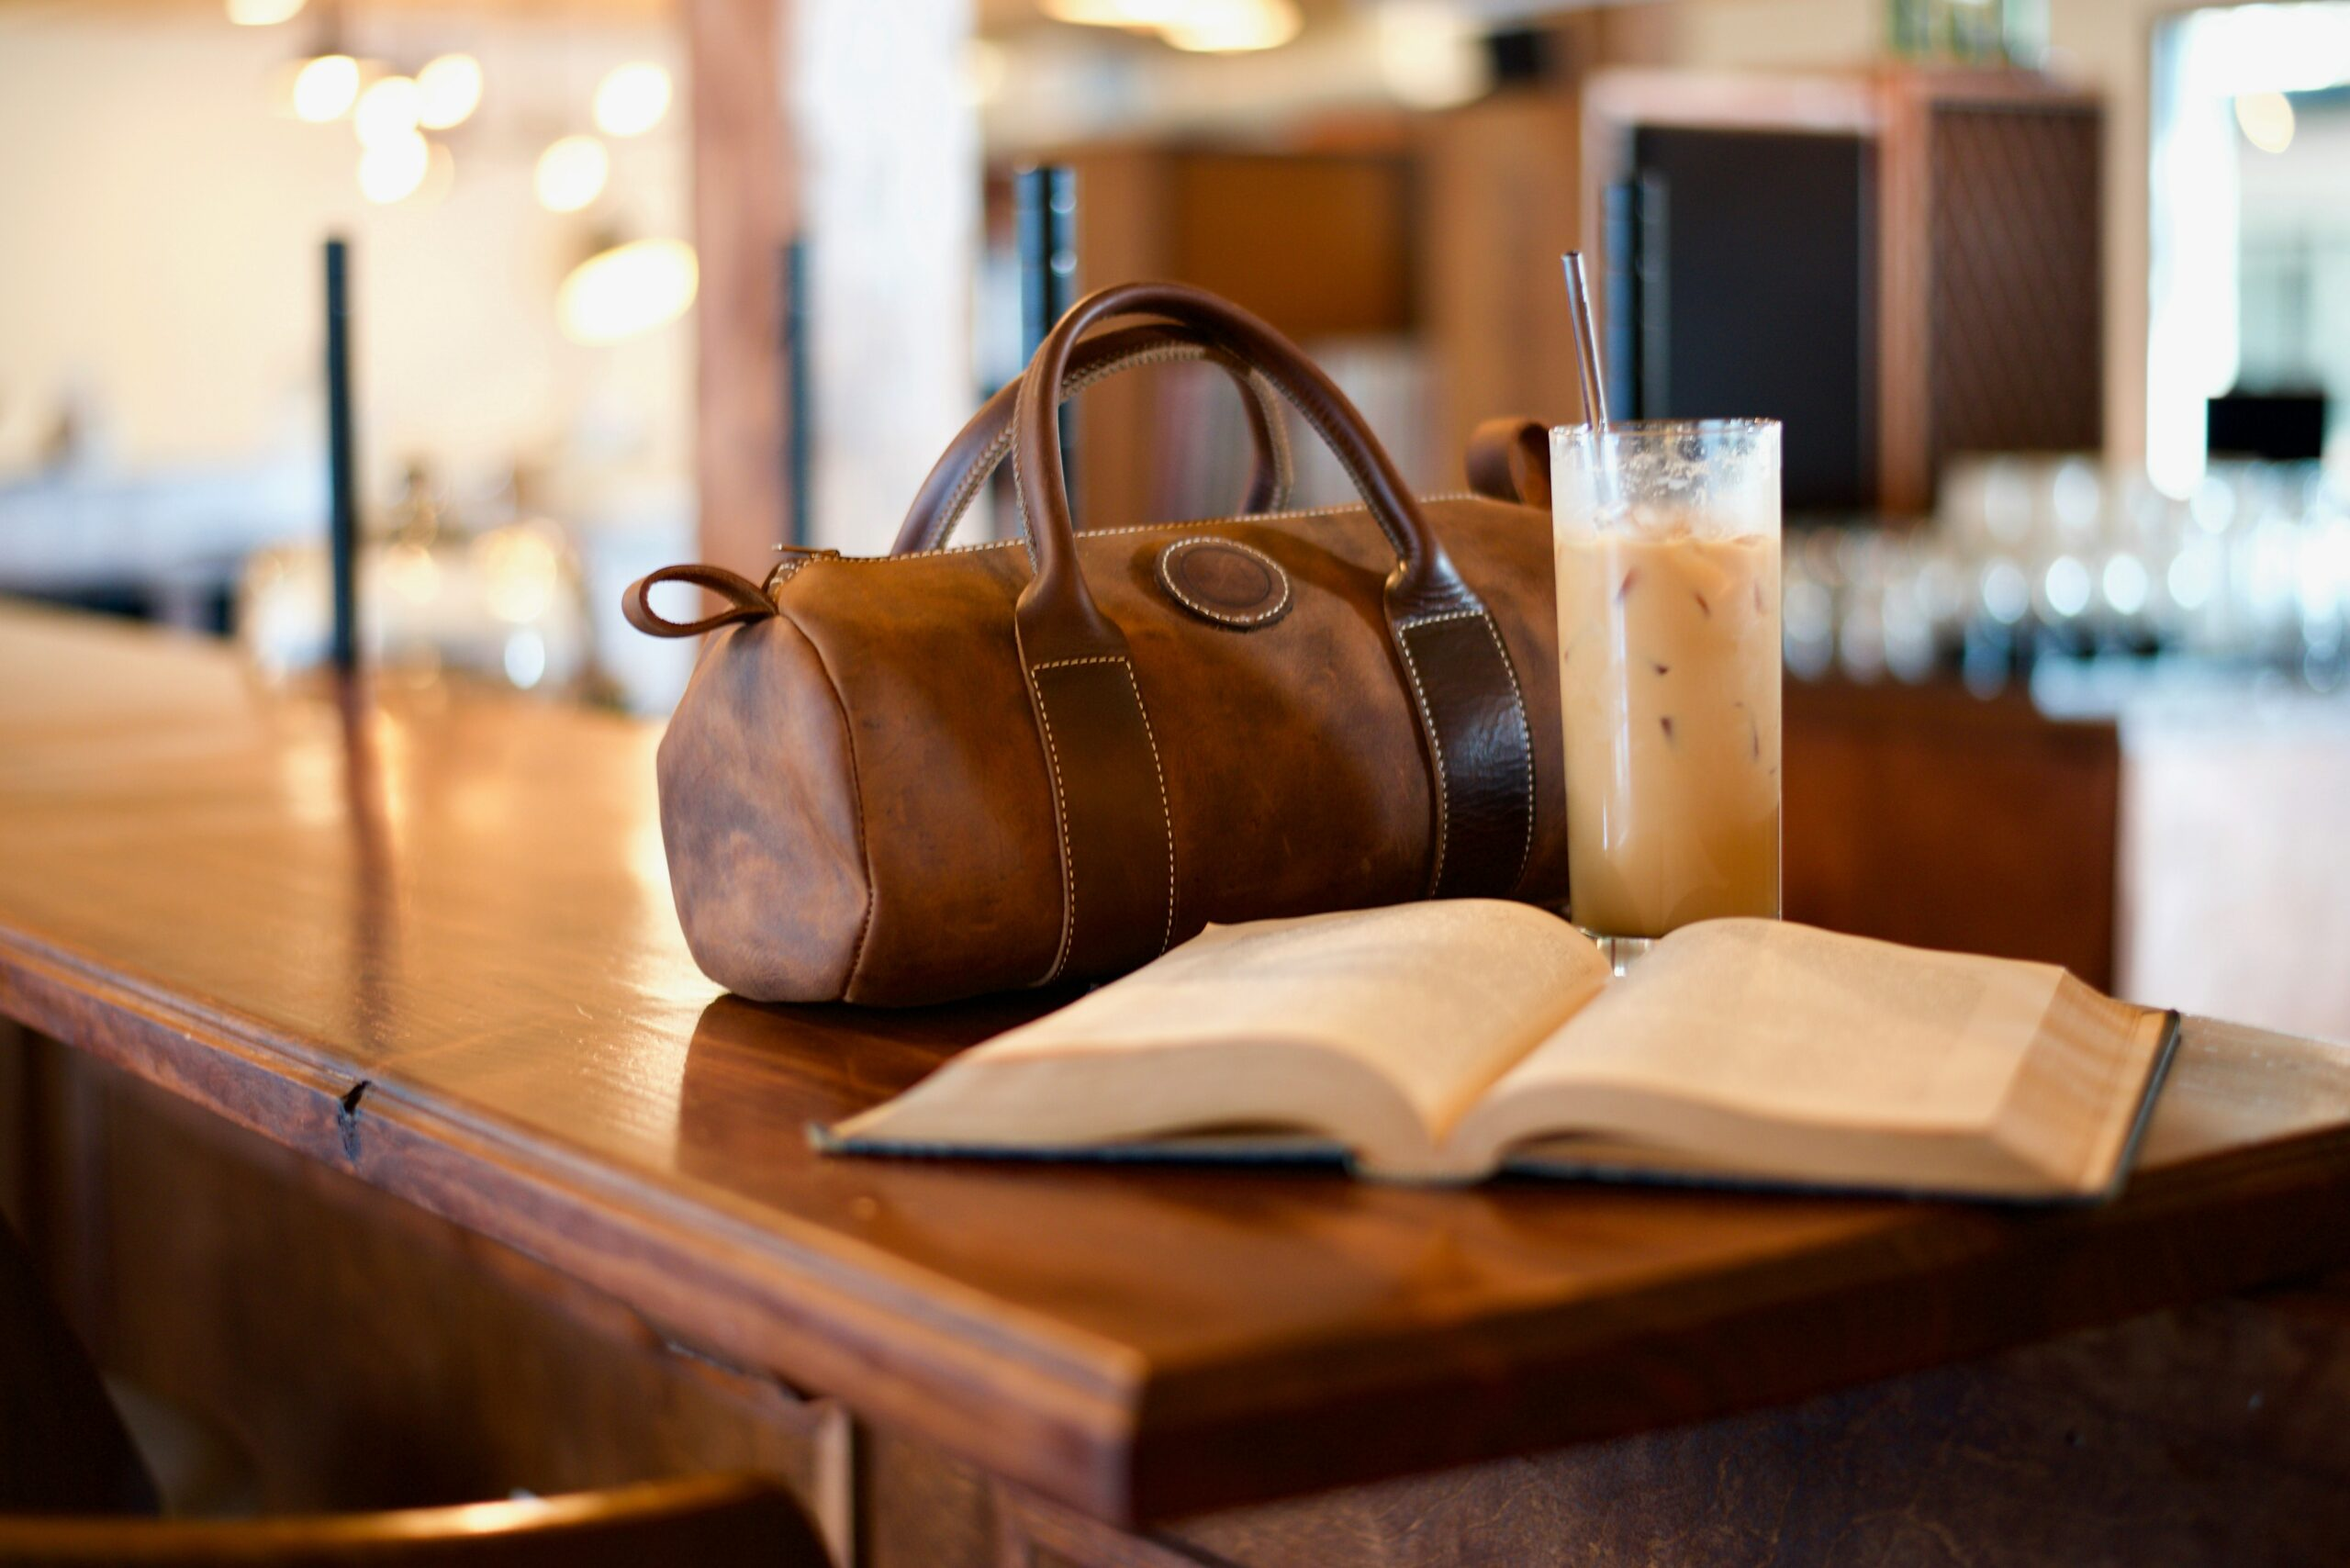 leather tote bag, book, and an iced coffee